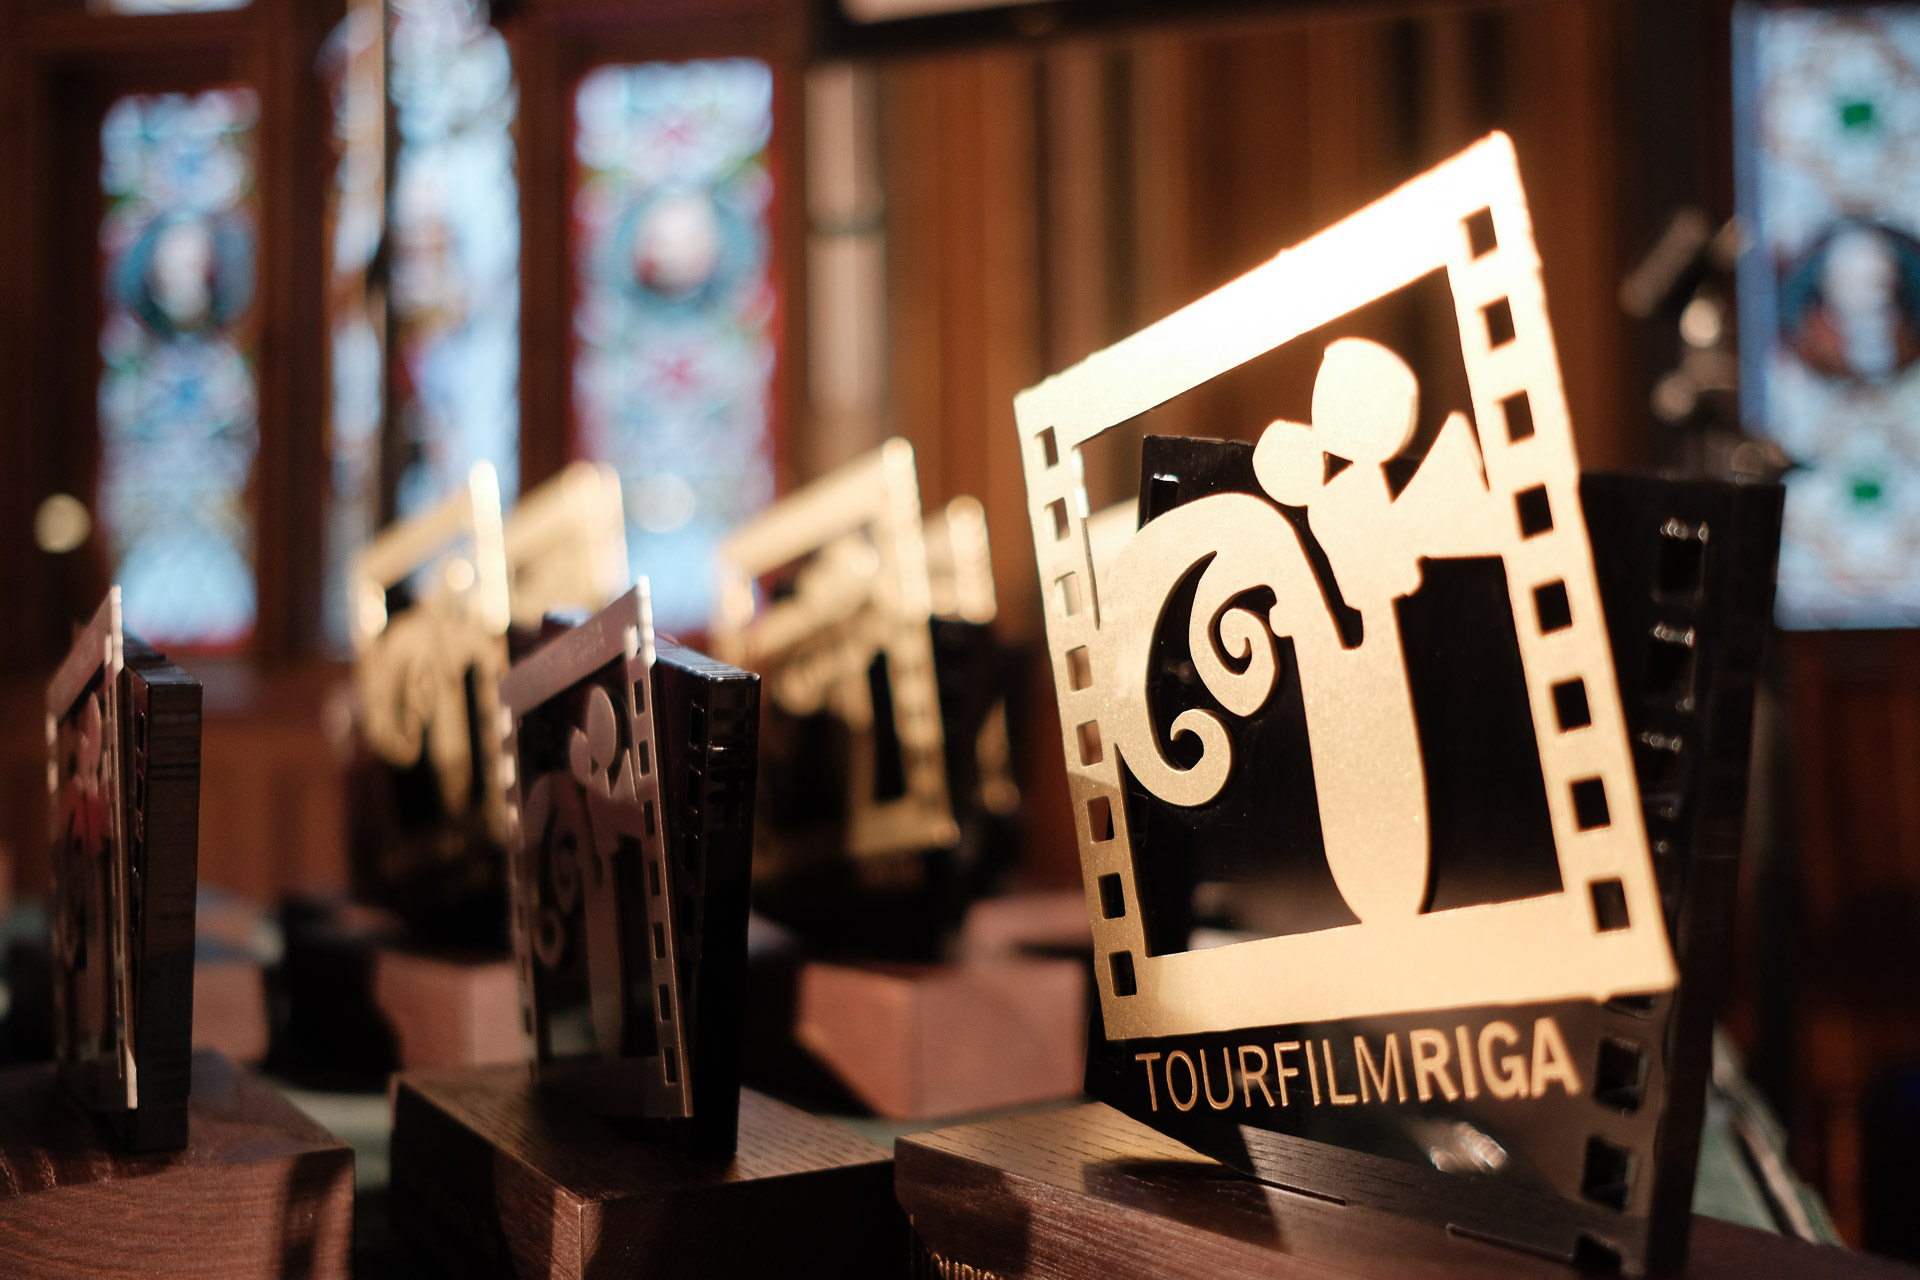 tourfilm-riga-award